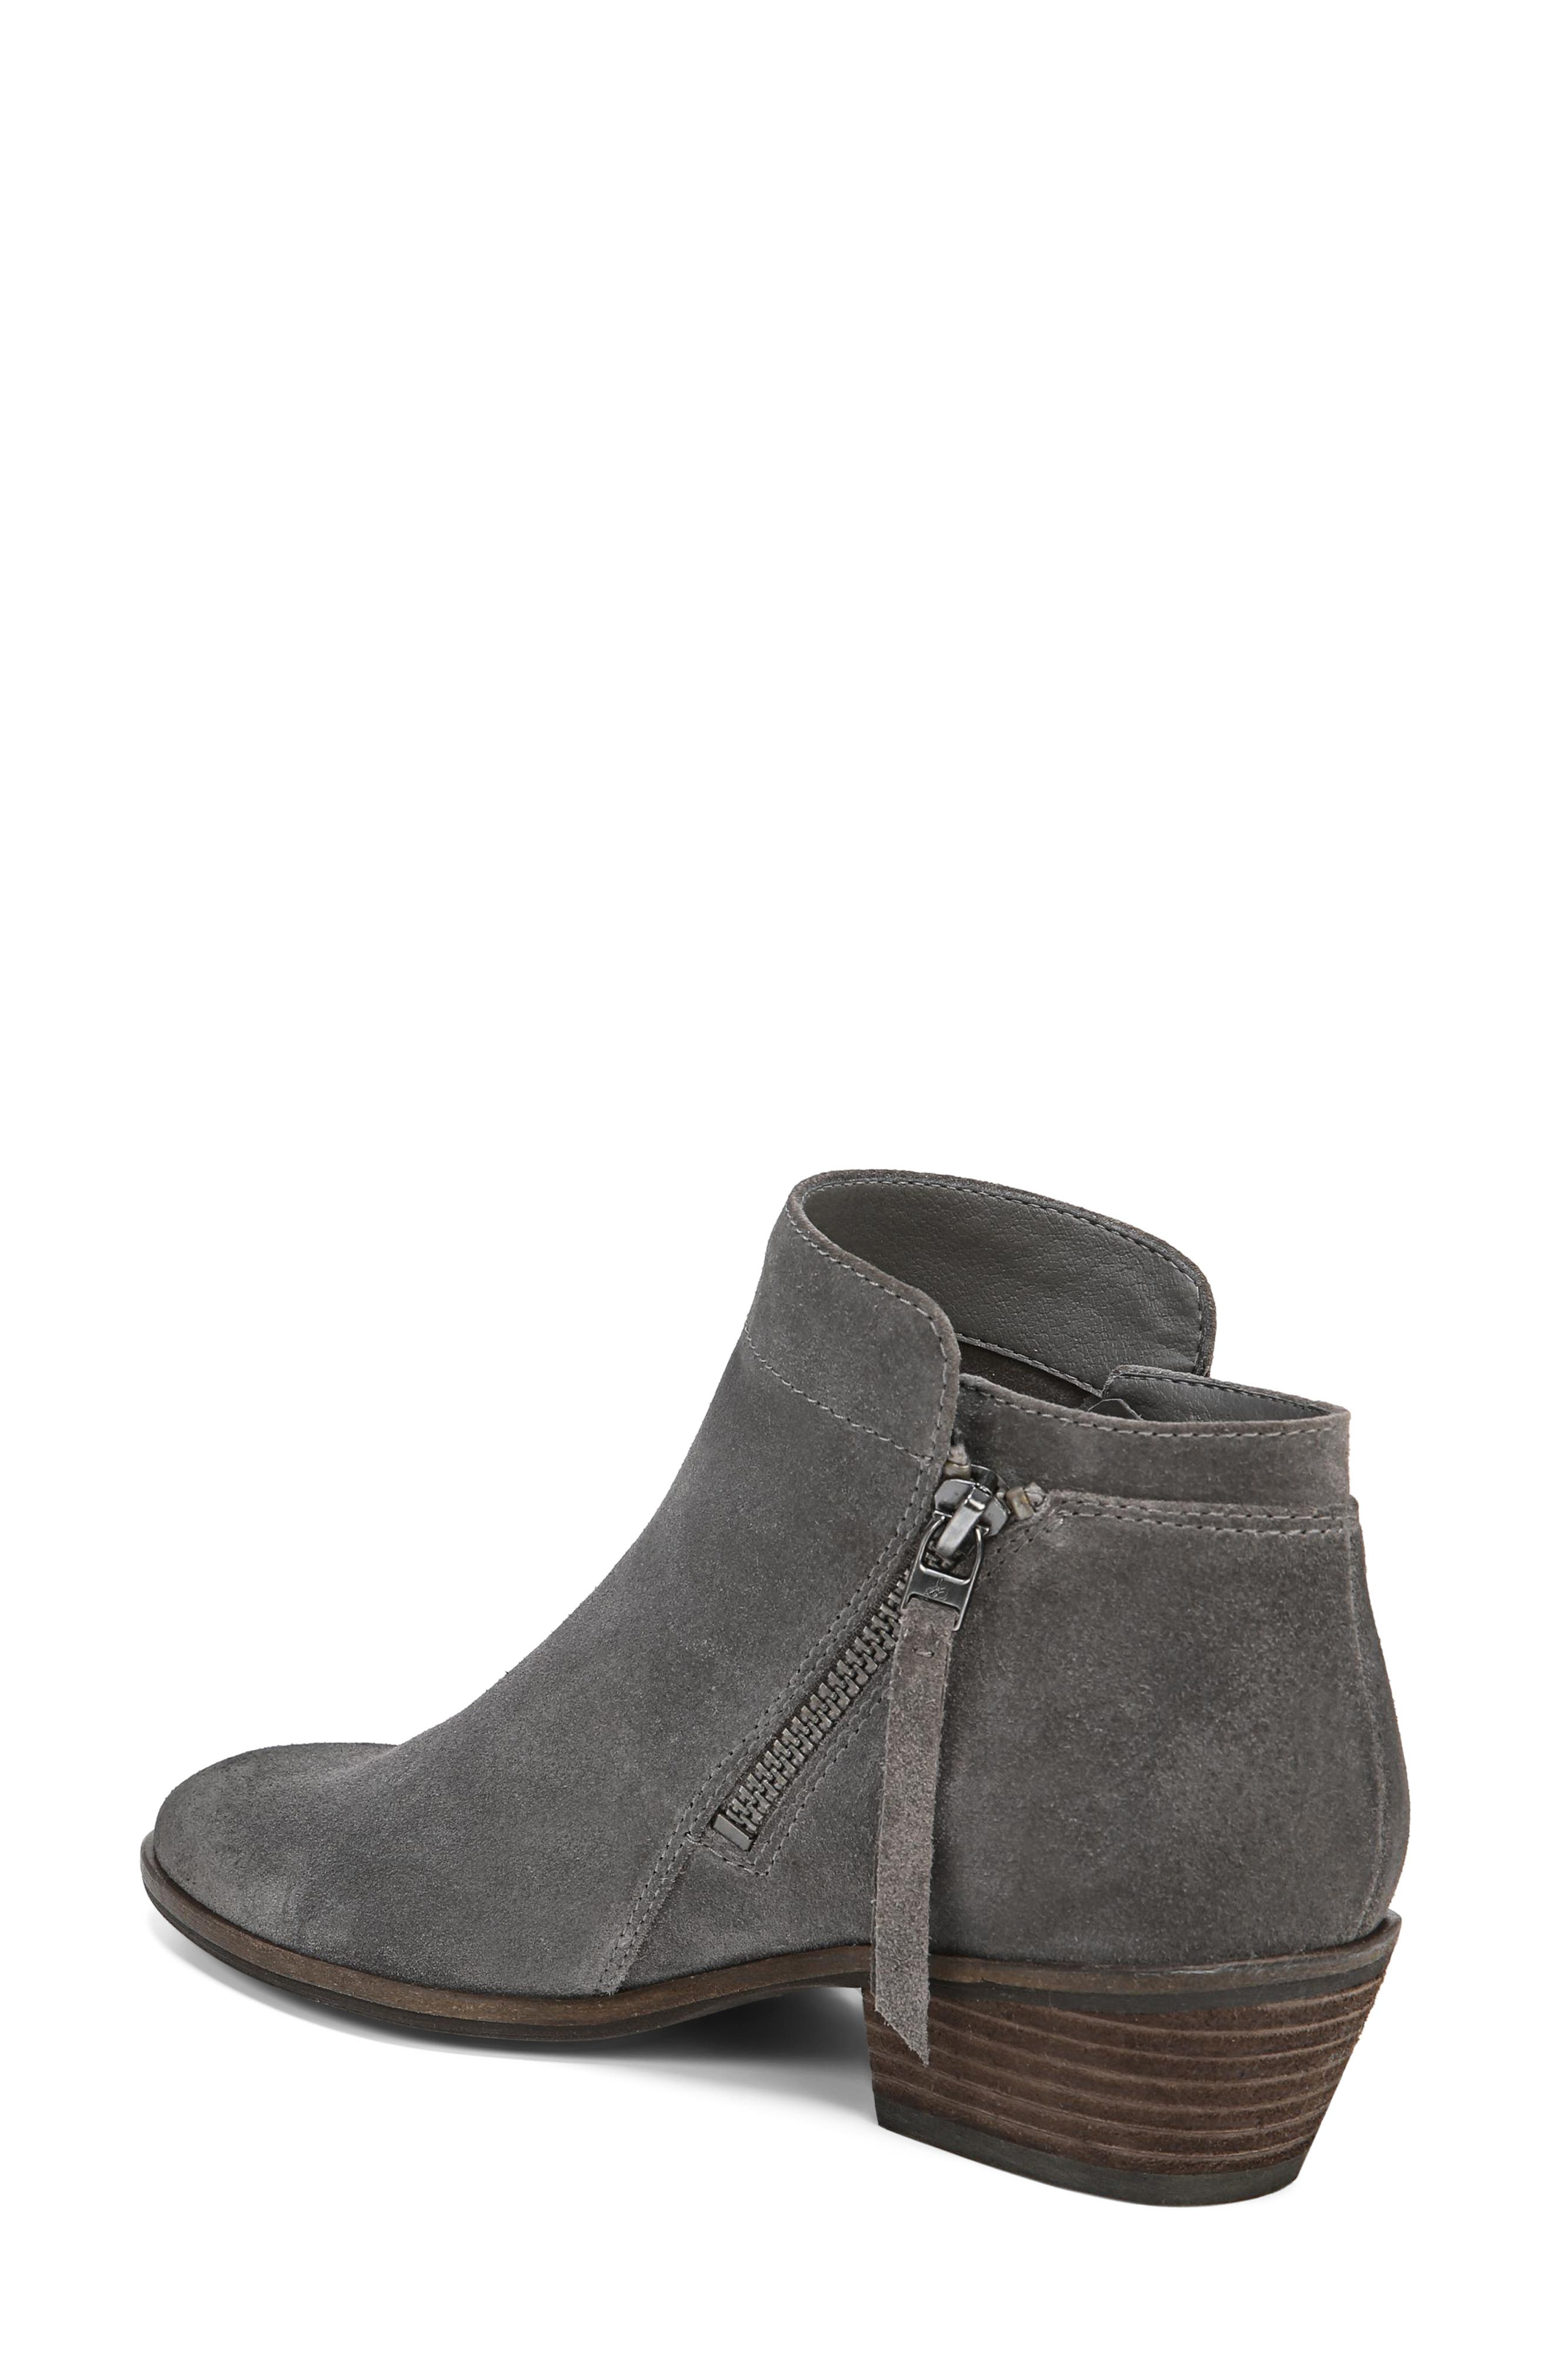 Packer Bootie,                             Alternate thumbnail 2, color,                             STEEL GREY SUEDE LEATHER